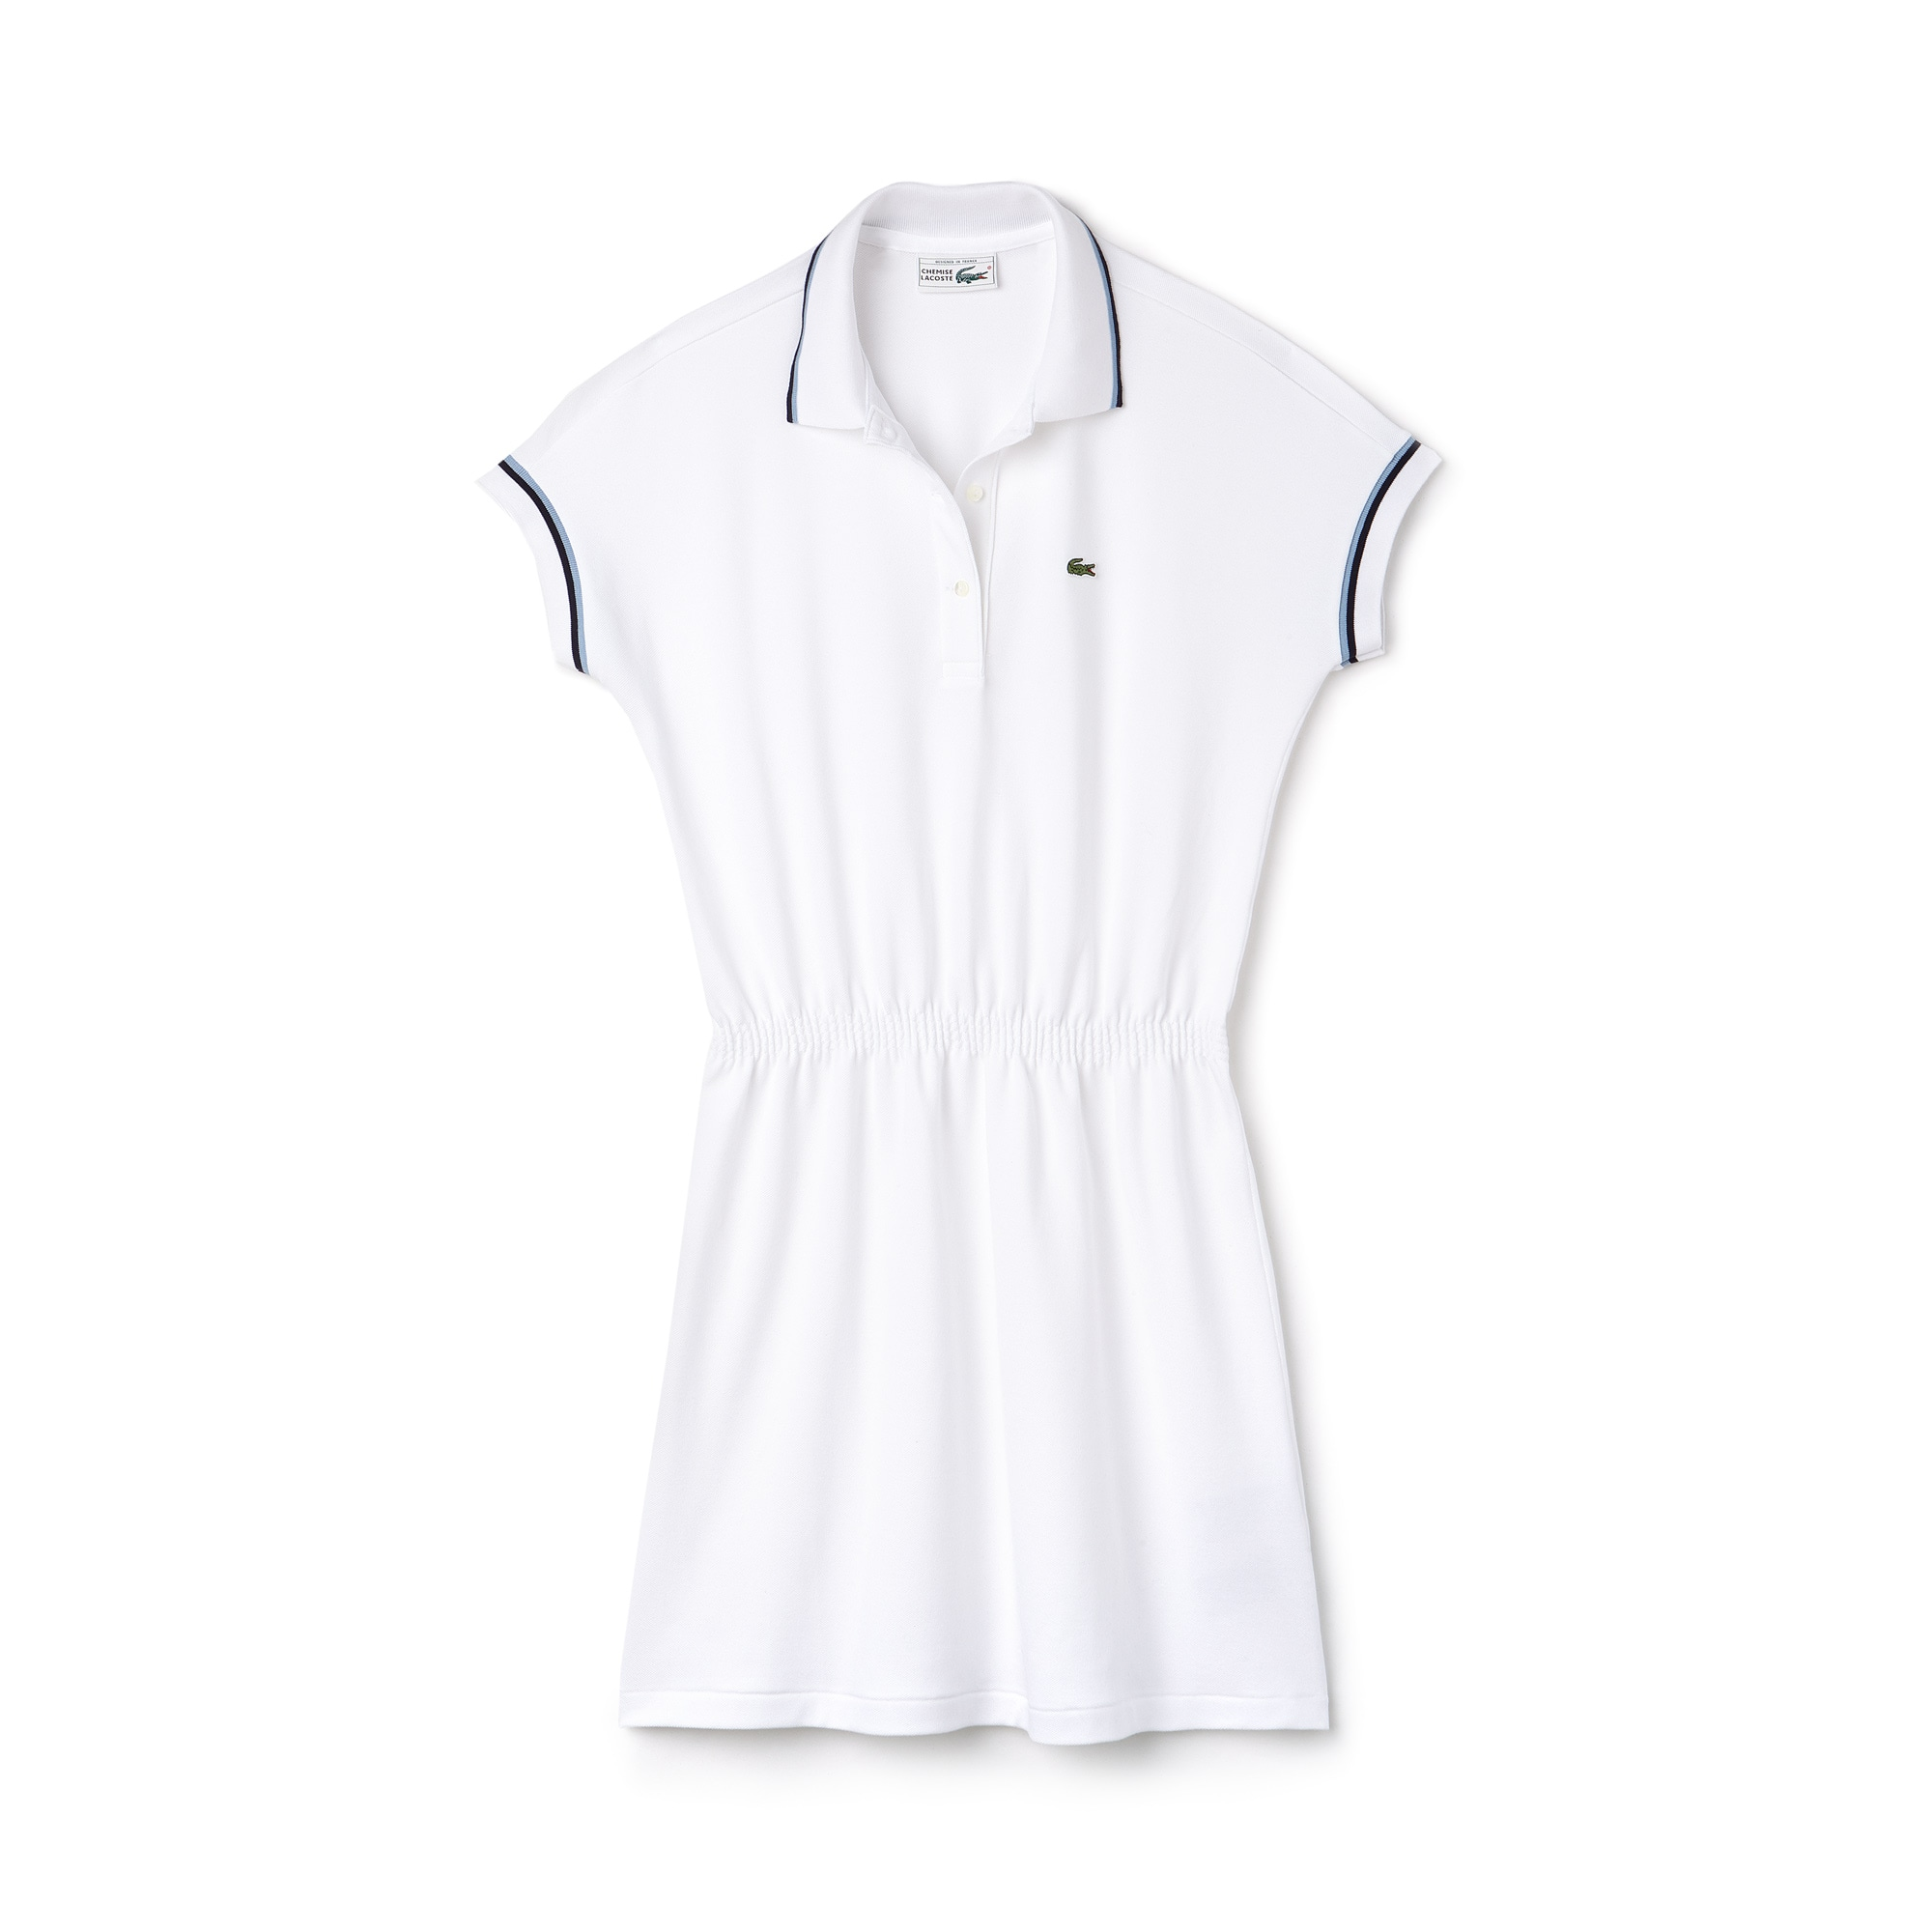 Women's Lacoste 1980s Revival 85th Anniversary Limited Edition Piqué Polo Dress